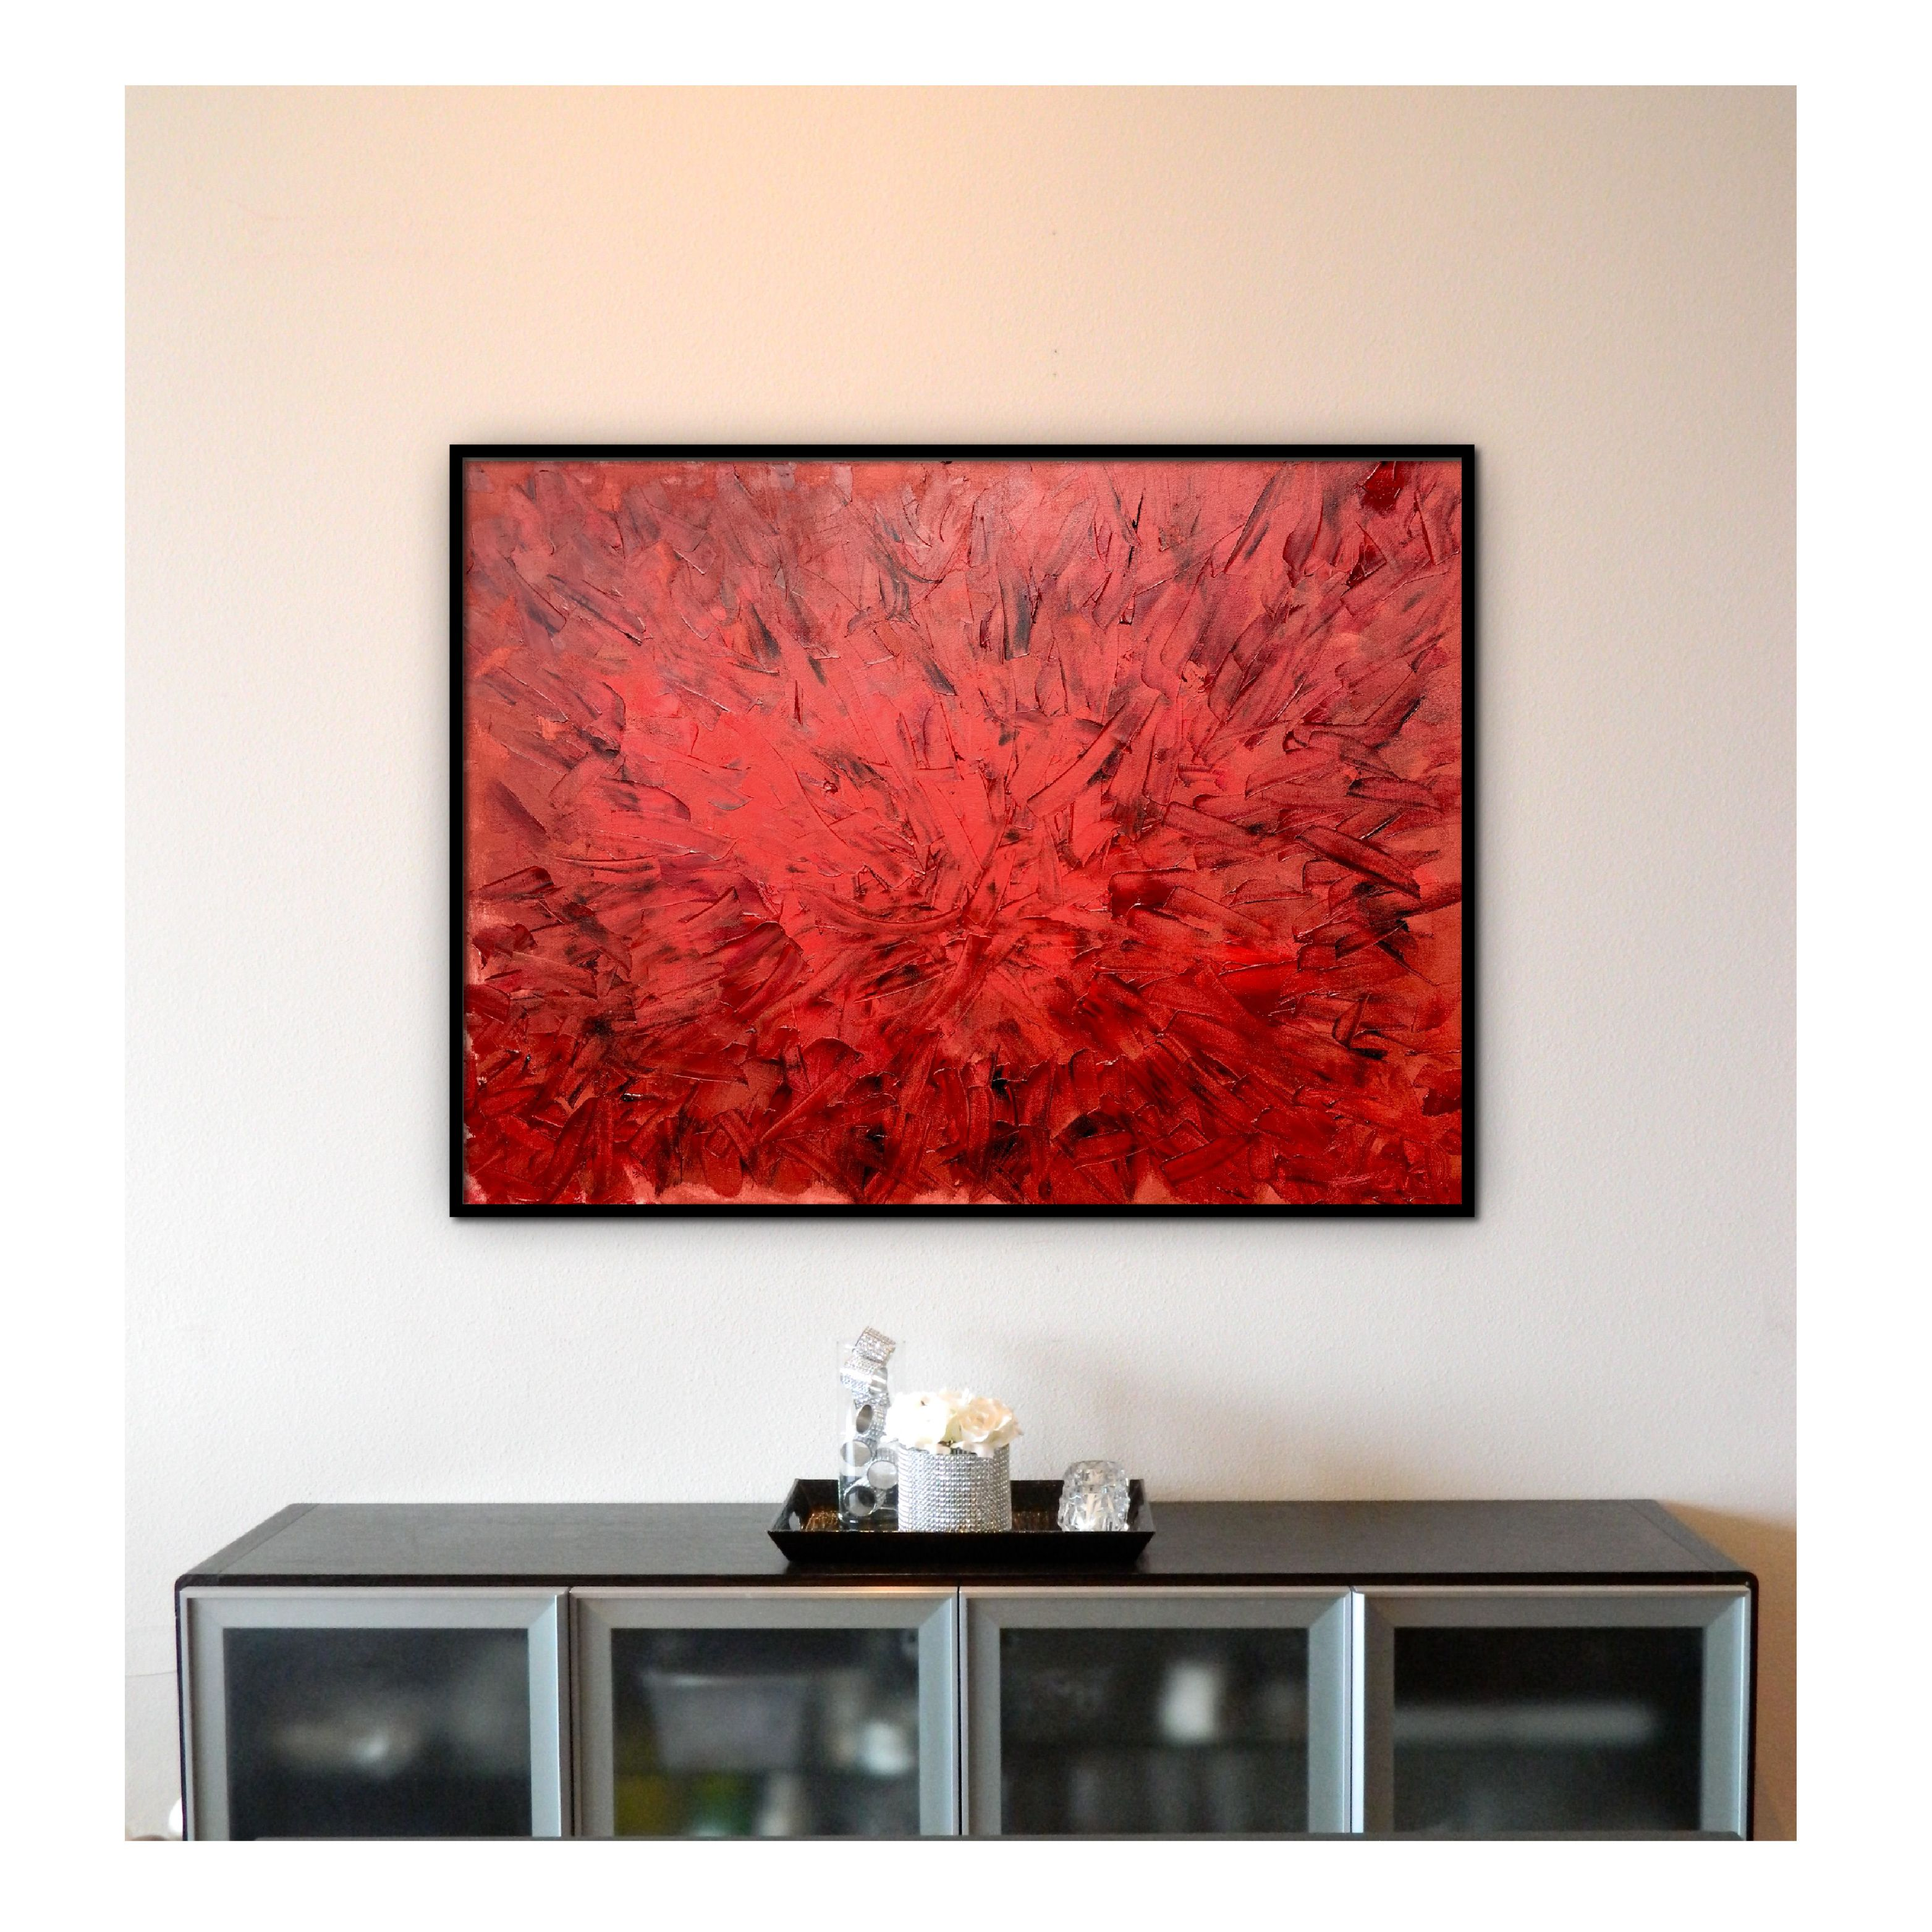 Big Red Redux 3 Oil Painting On Canvas Red Wall Art Oil Painting Abstract #red #wall #art #for #living #room